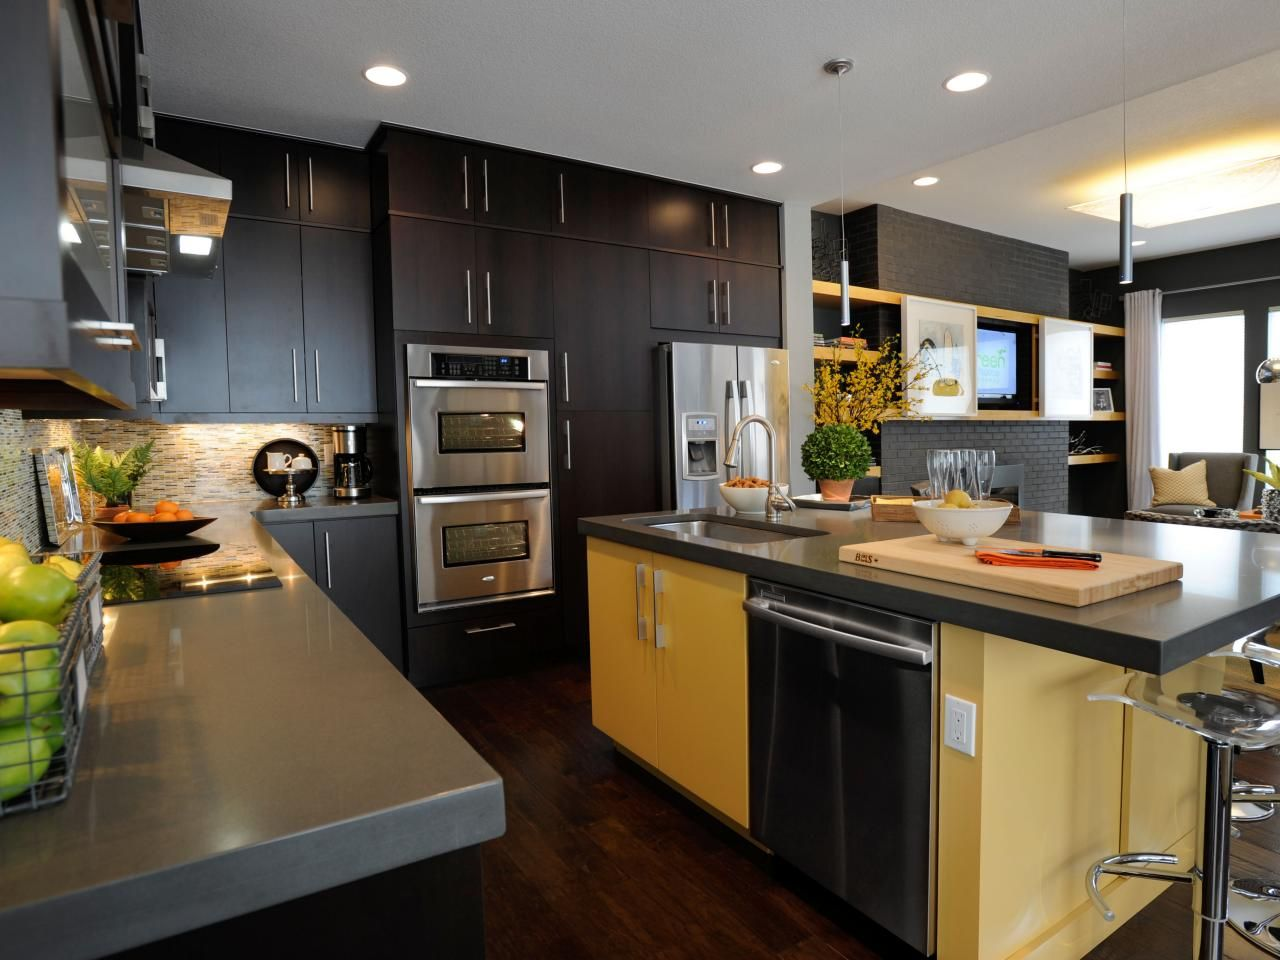 Kitchen Island 6 Feet a yellow 5-6-foot kitchen island serves as both a work and